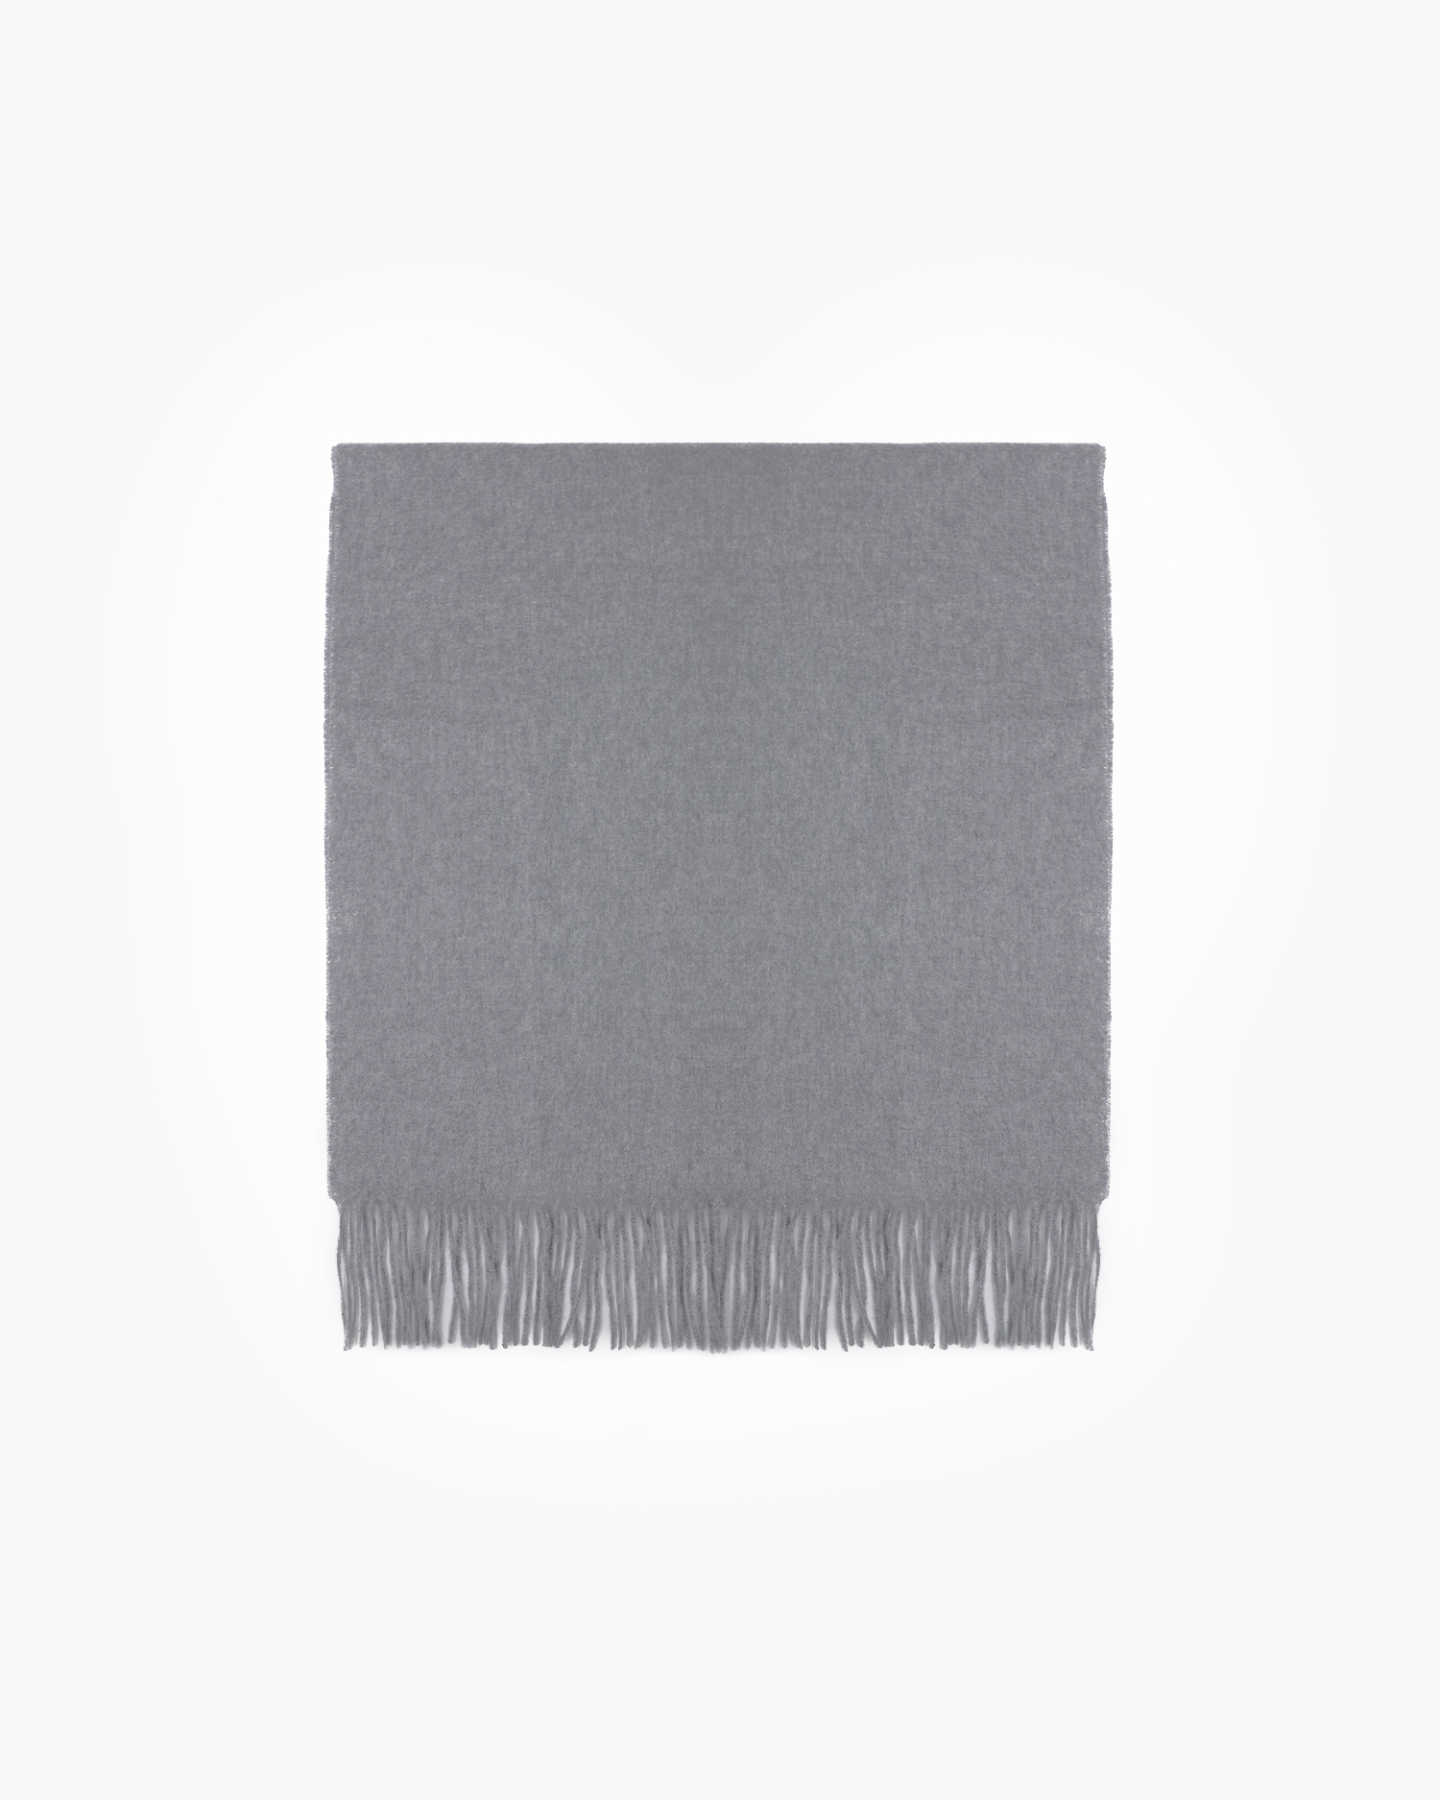 You May Also Like - Mongolian Cashmere Throw - Heather Grey